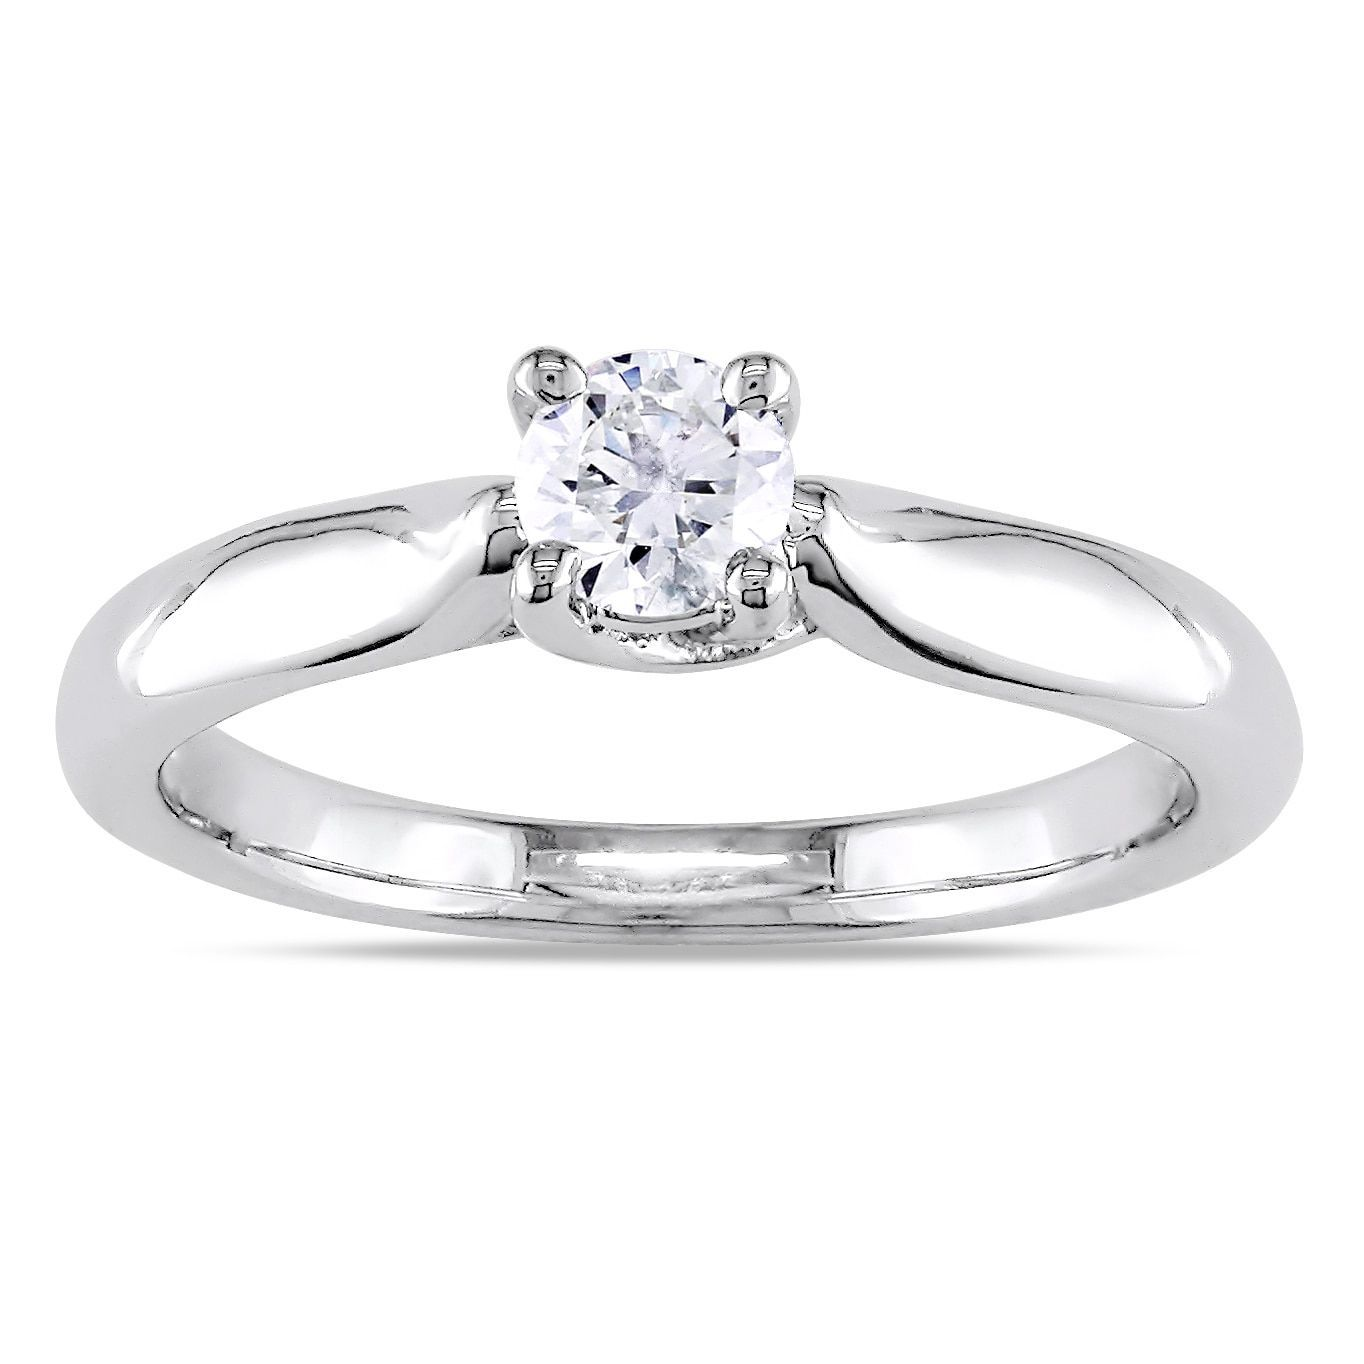 Miadora signature collection 14k white gold 1ct tdw diamond double row - Miadora 14k Gold 1 3ct Tdw Diamond Solitaire Engagement Ring H I I2 I3 White Size 9 Women S